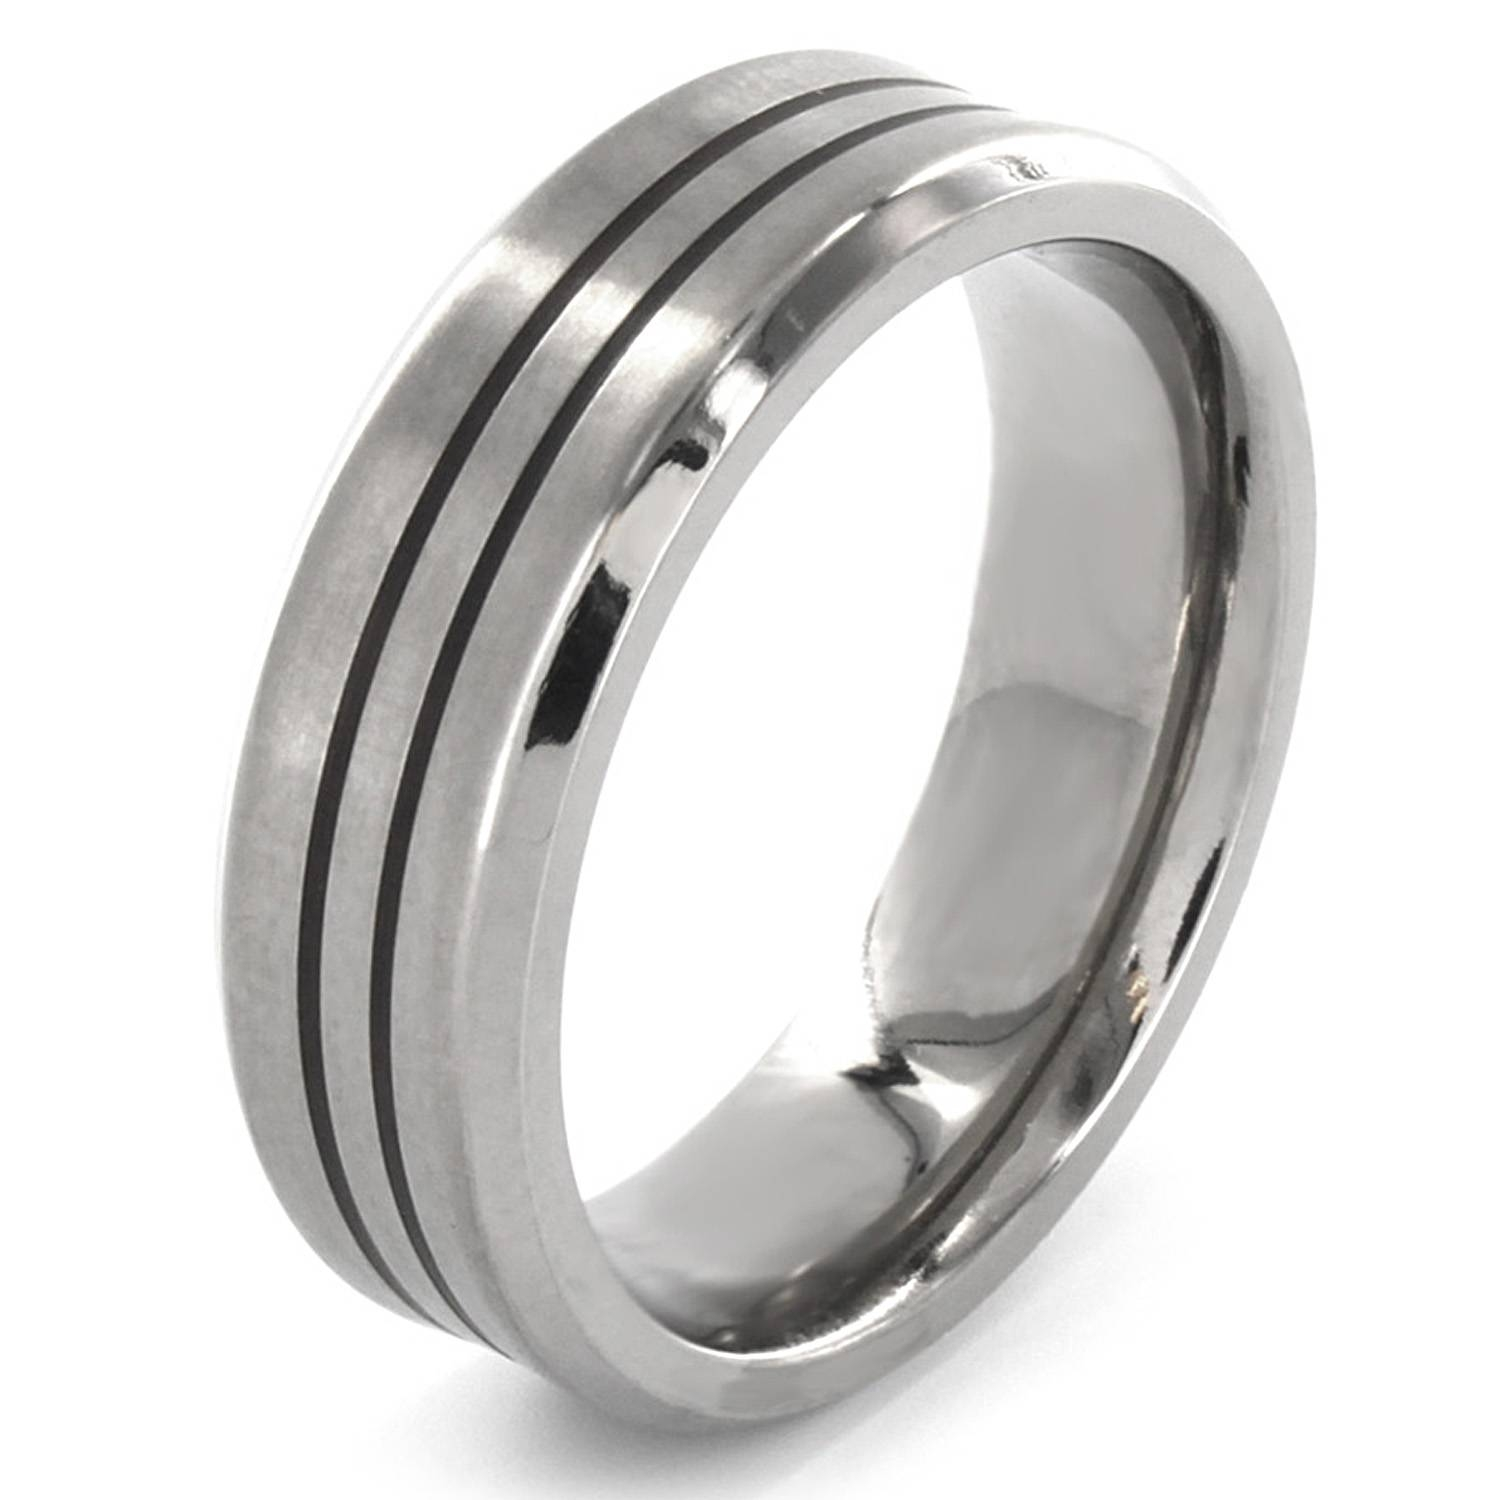 Mens Titanium Wedding Bands Are No Less Appealing Than Gold Pertaining To Men's Titanium Wedding Bands With Diamonds (View 7 of 15)